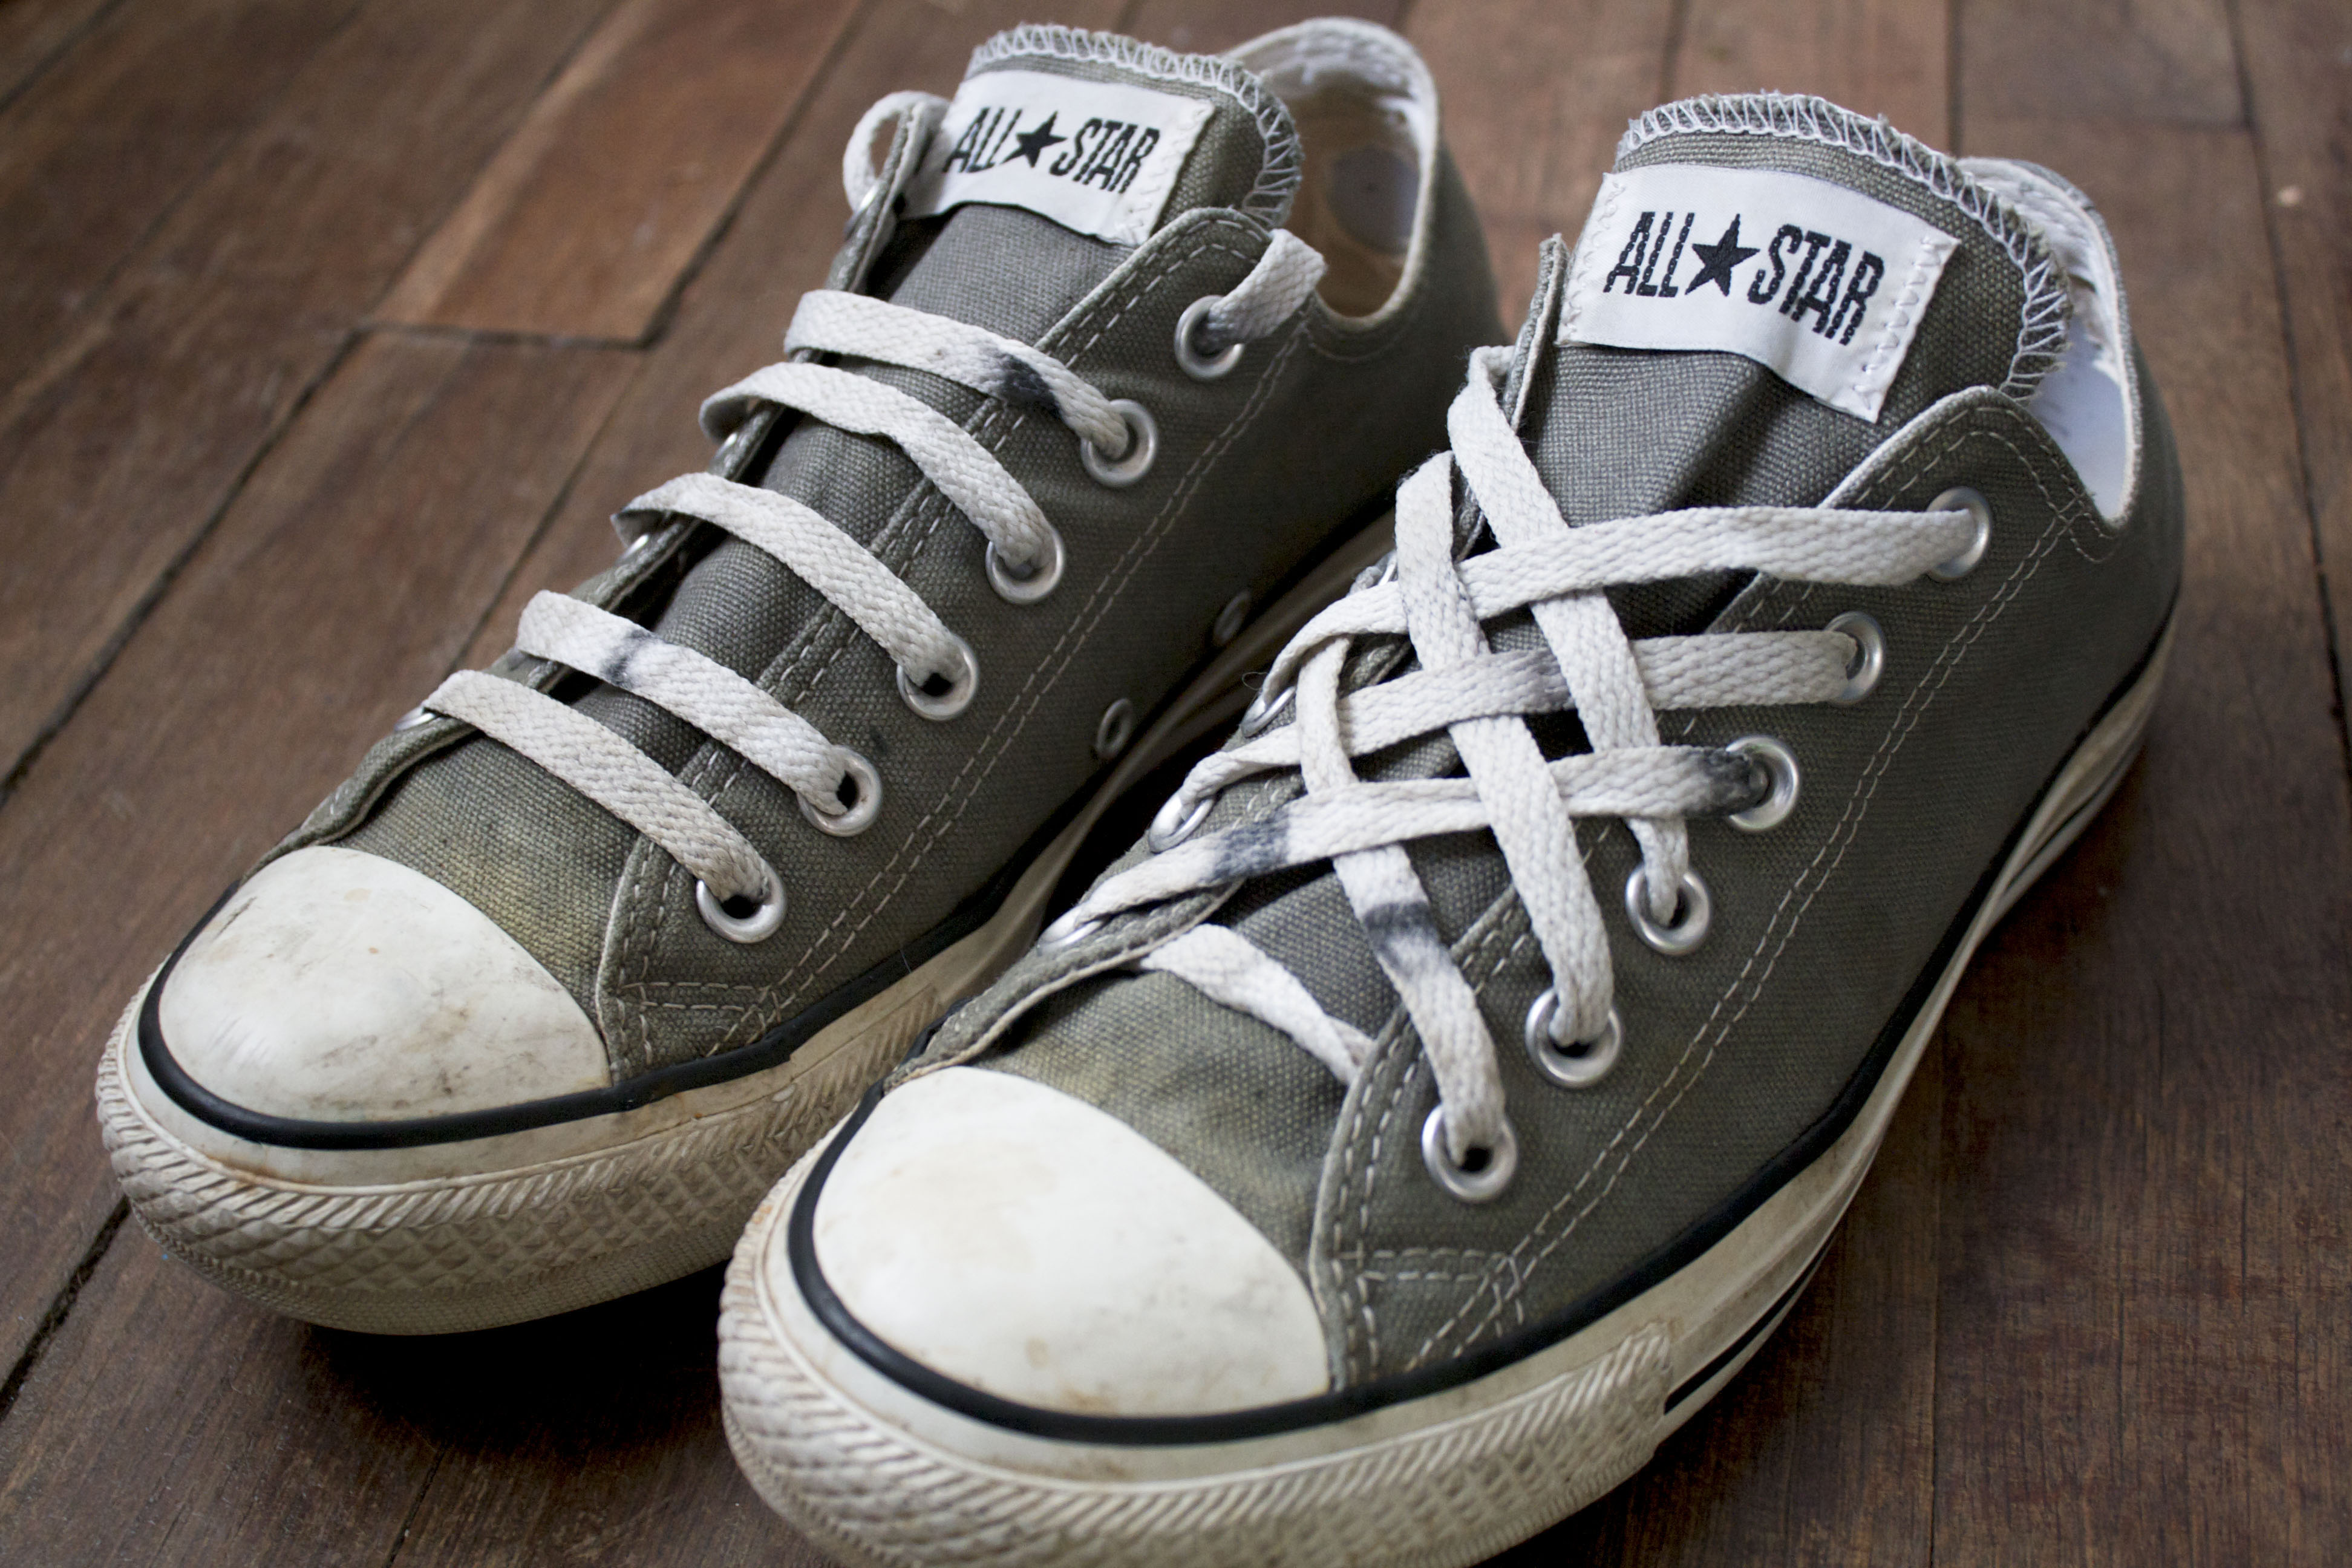 how long are high top converse laces